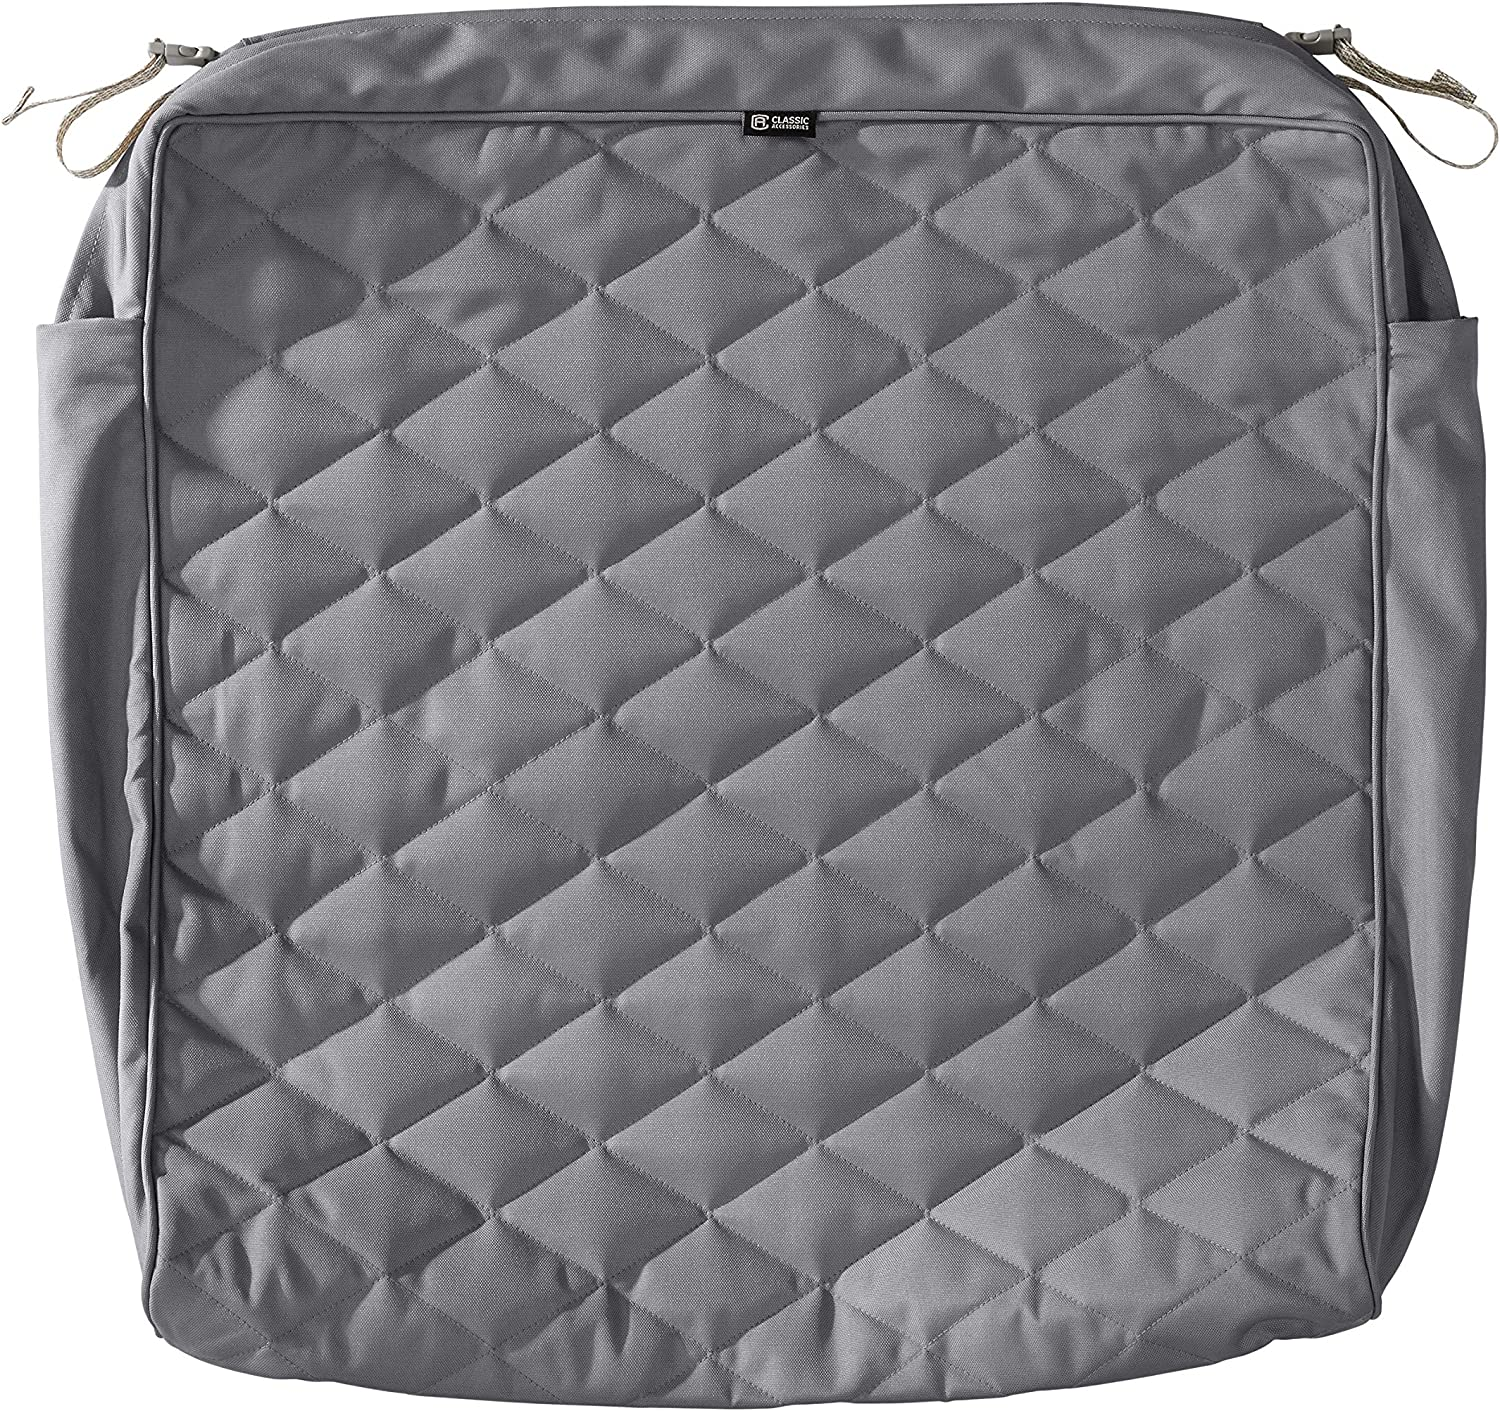 Classic Accessories Montlake Water-Resistant 25 x 27 x 5 Inch Rectangle Outdoor Quilted Seat Cushion Cover, Patio Furniture Chair Cushion Cover, Grey